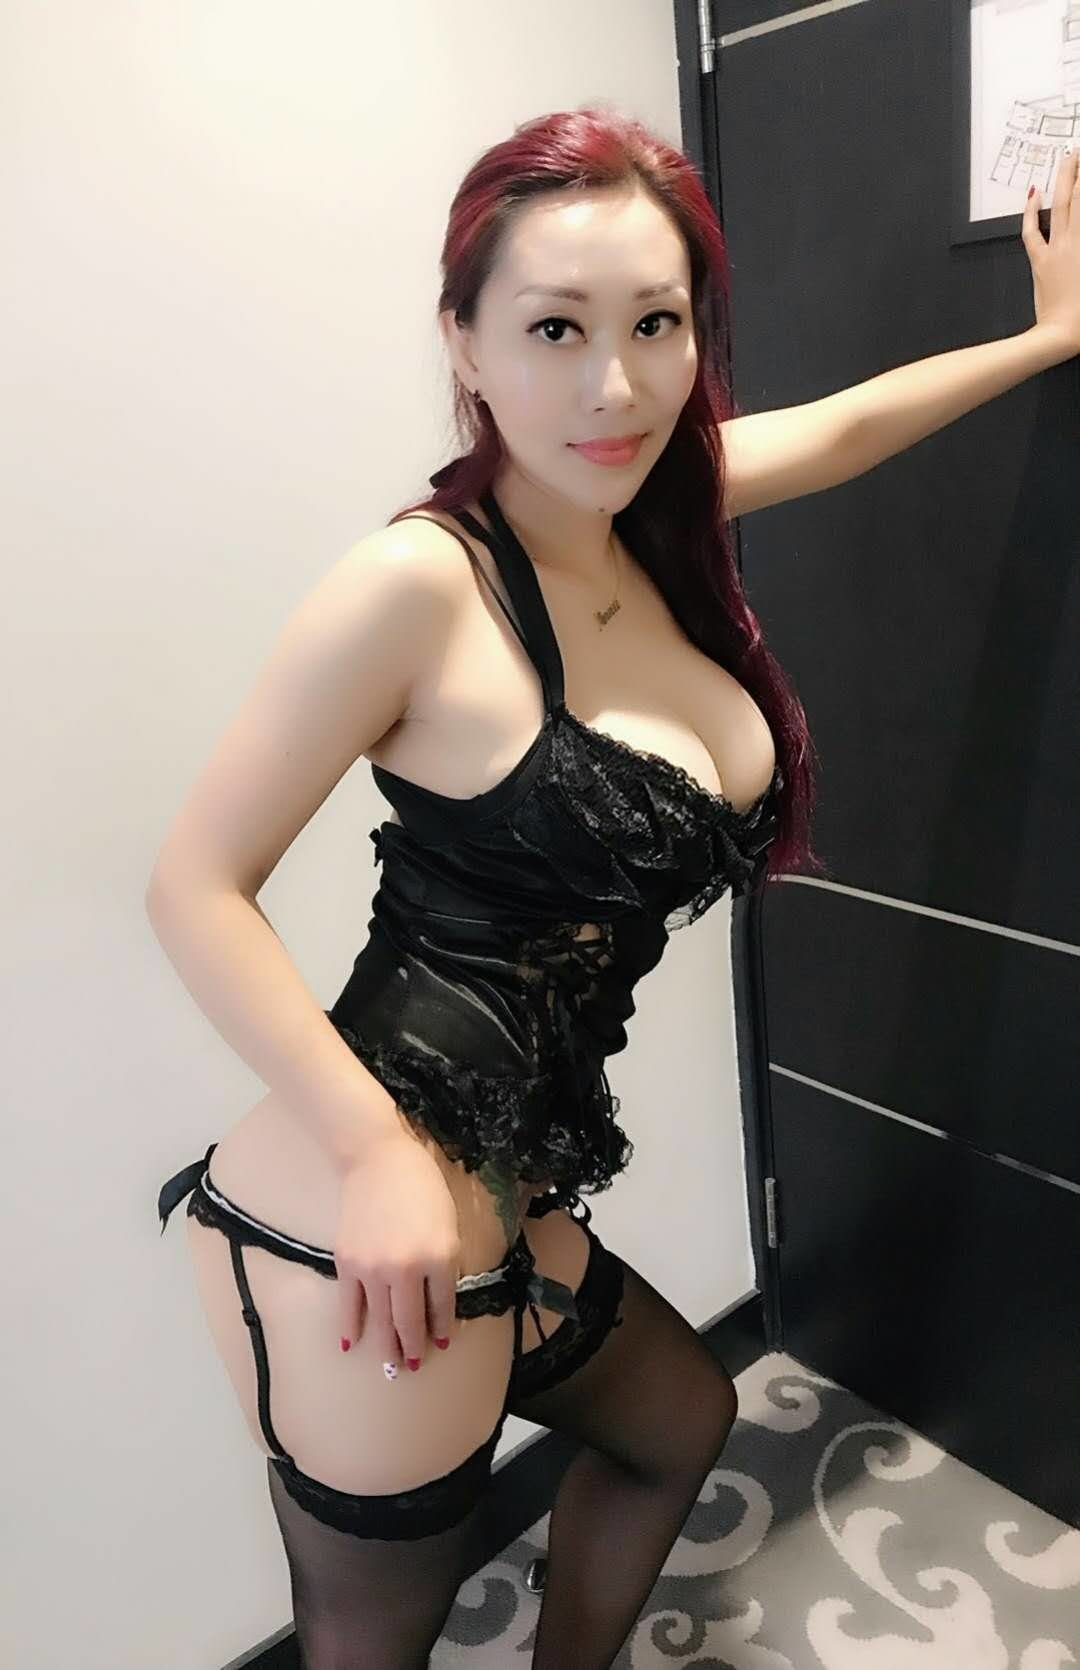 real escort experience anal escort girl